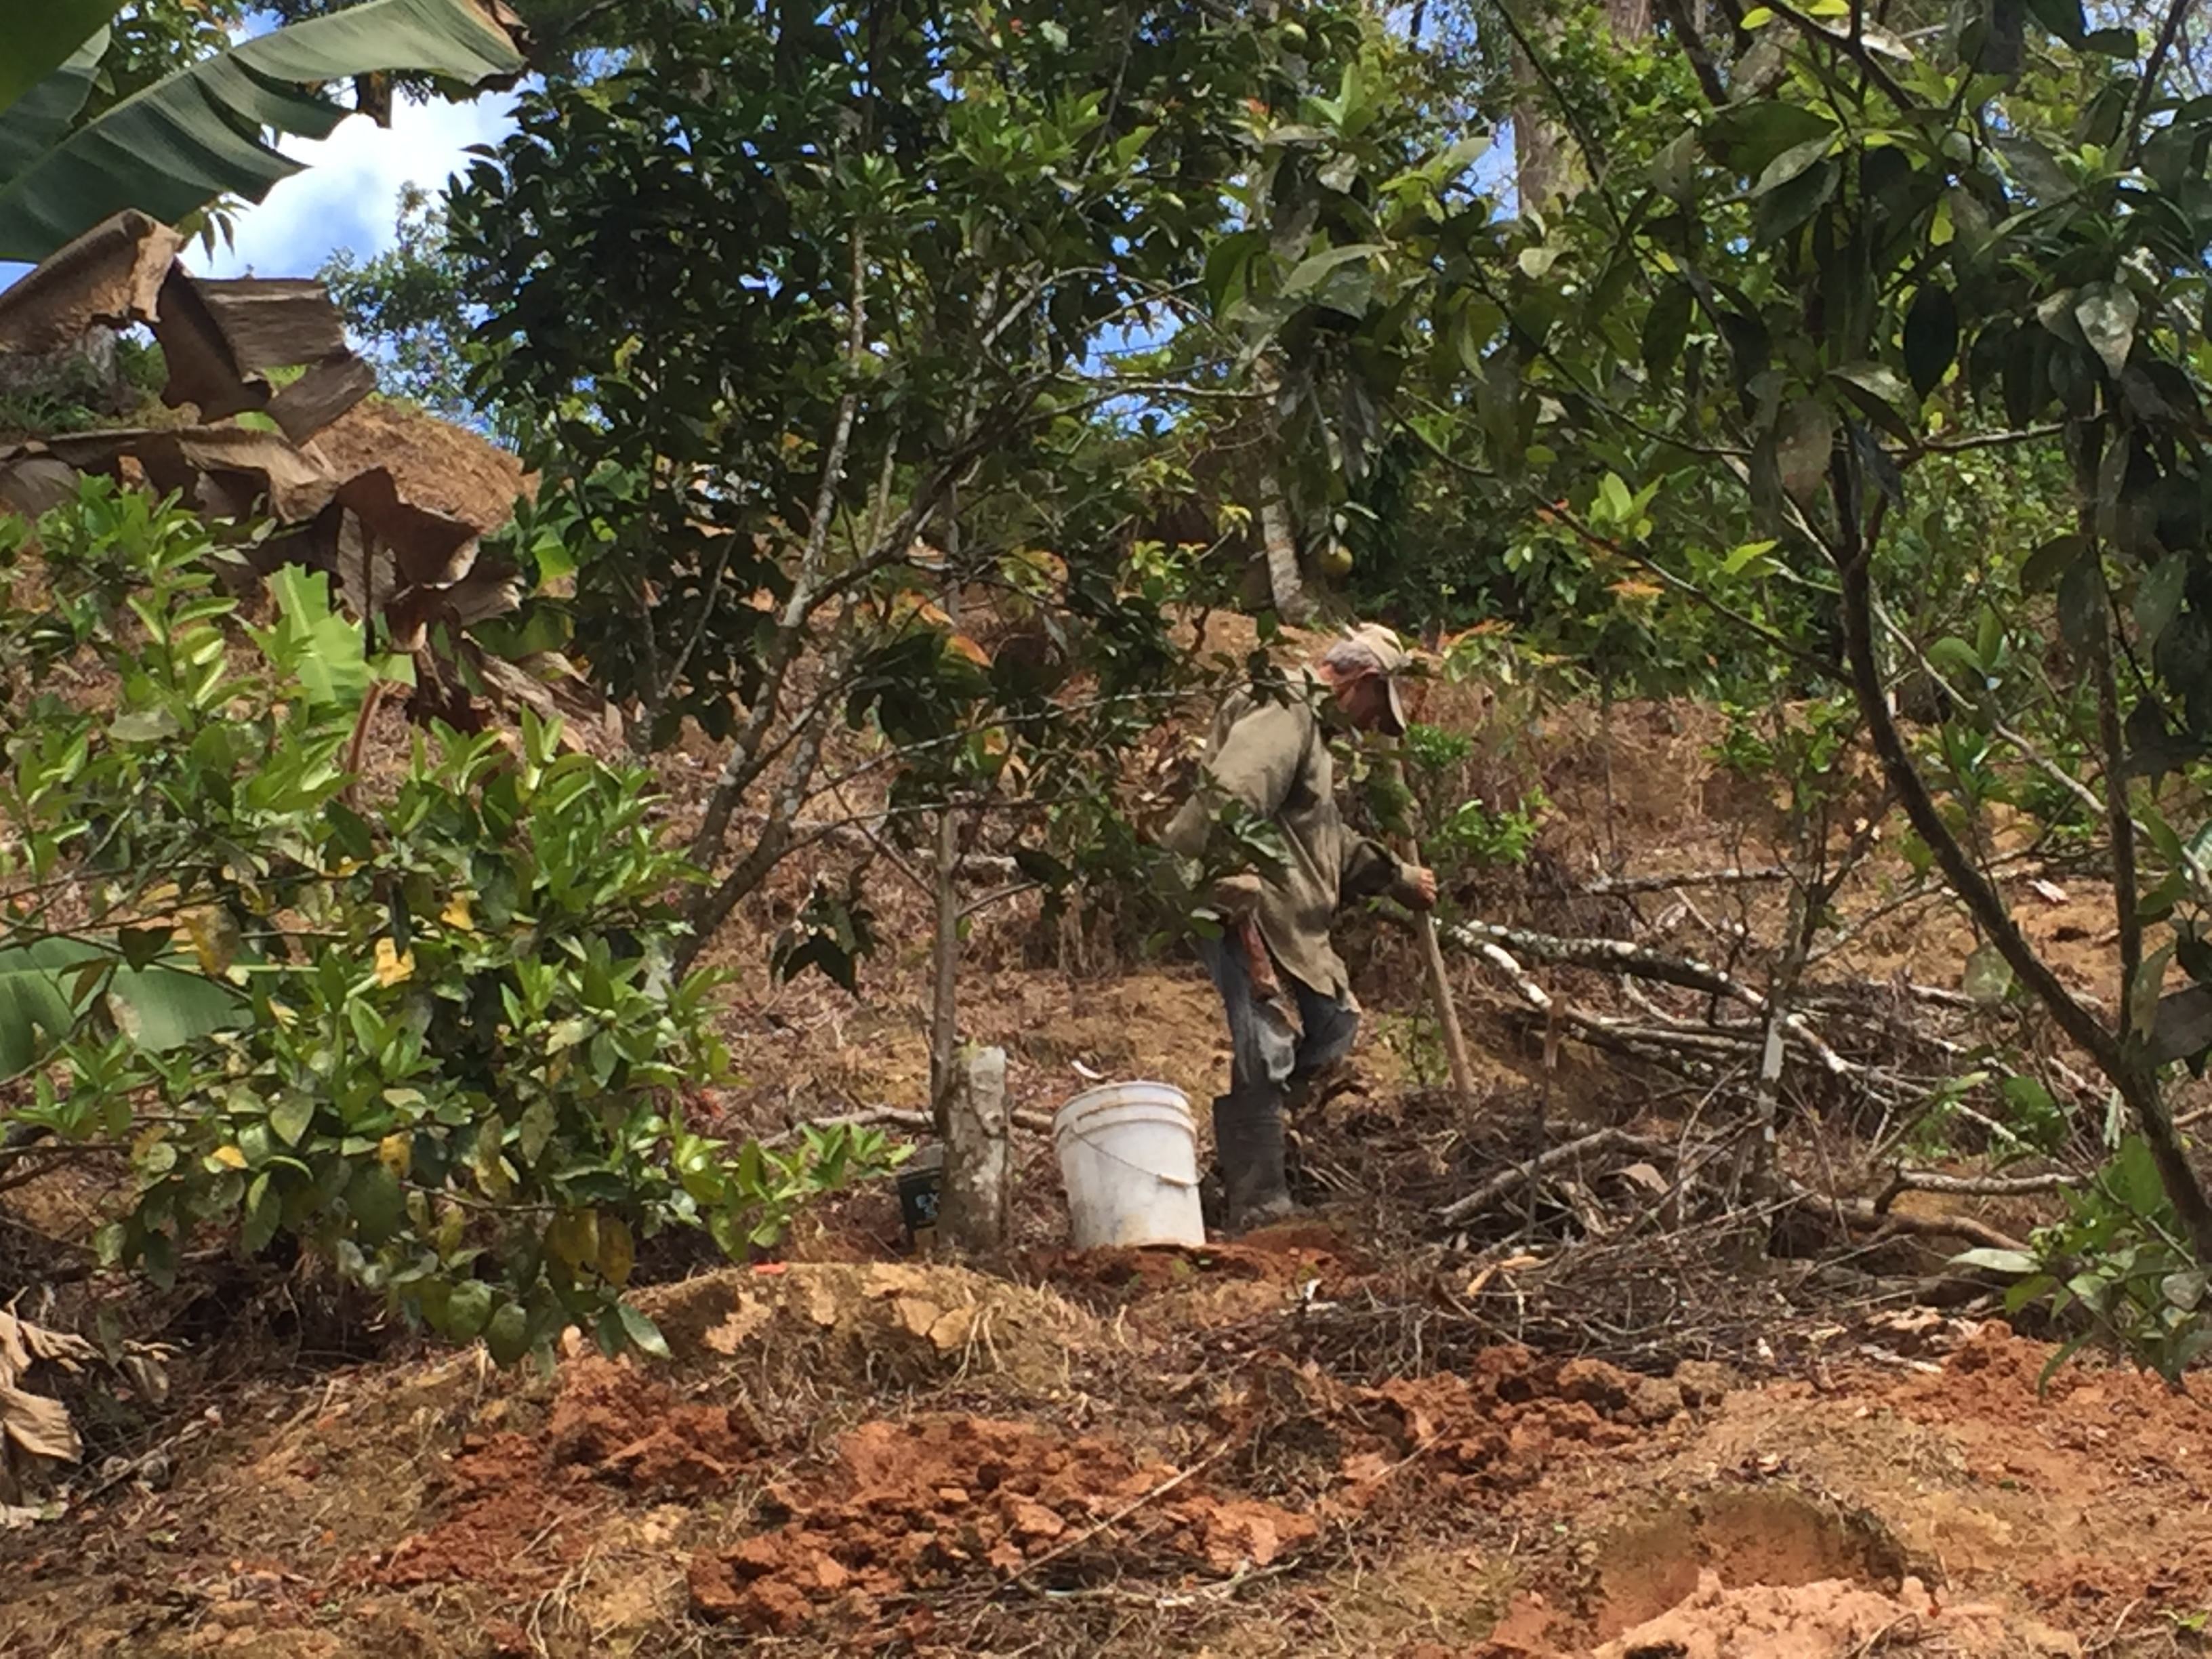 In July 2018, coffee farmer Julio Rivera Maldonado clears debris and weeds on his coffee farm in Utuado, Puerto Rico, less than a year after Hurricane Maria. Large shade trees toppled onto the coffee plants. Weeds choked those that survived. Image credit: Nardy Baeza Bickel, Michigan News